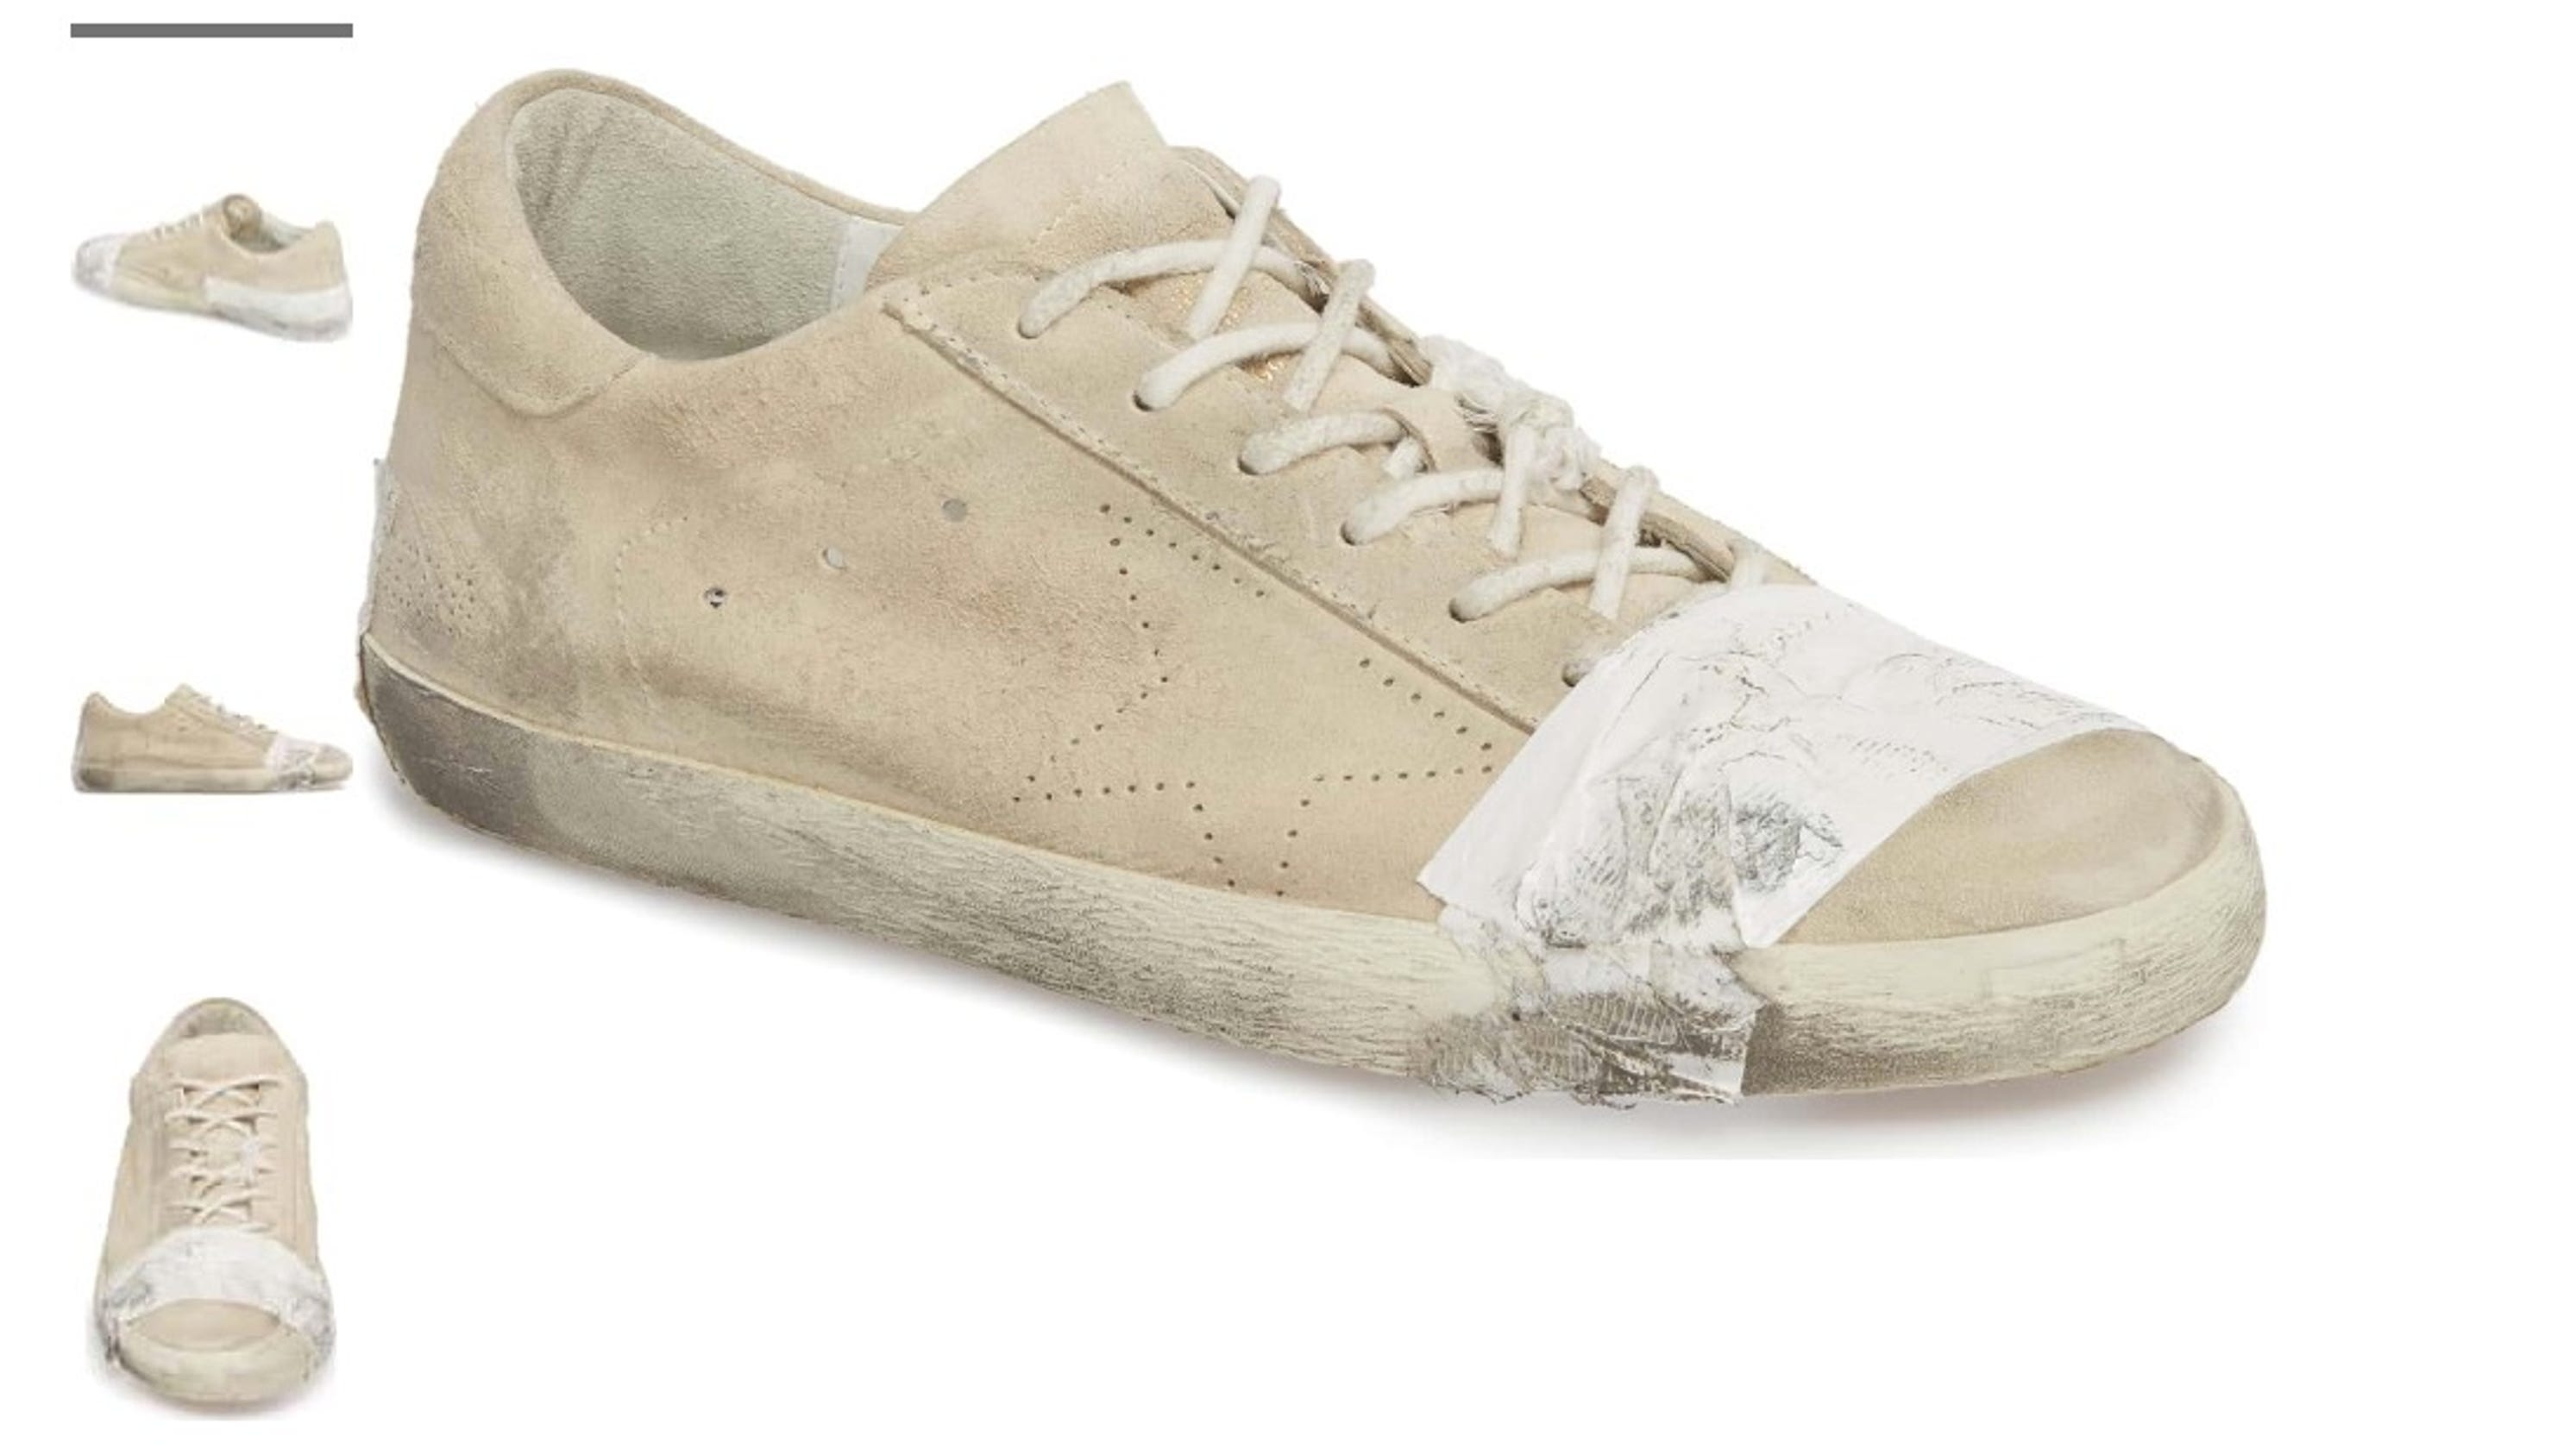 33fc6ea063c2 Nordstrom s  530 taped-up sneakers sell out despite consumer outcry